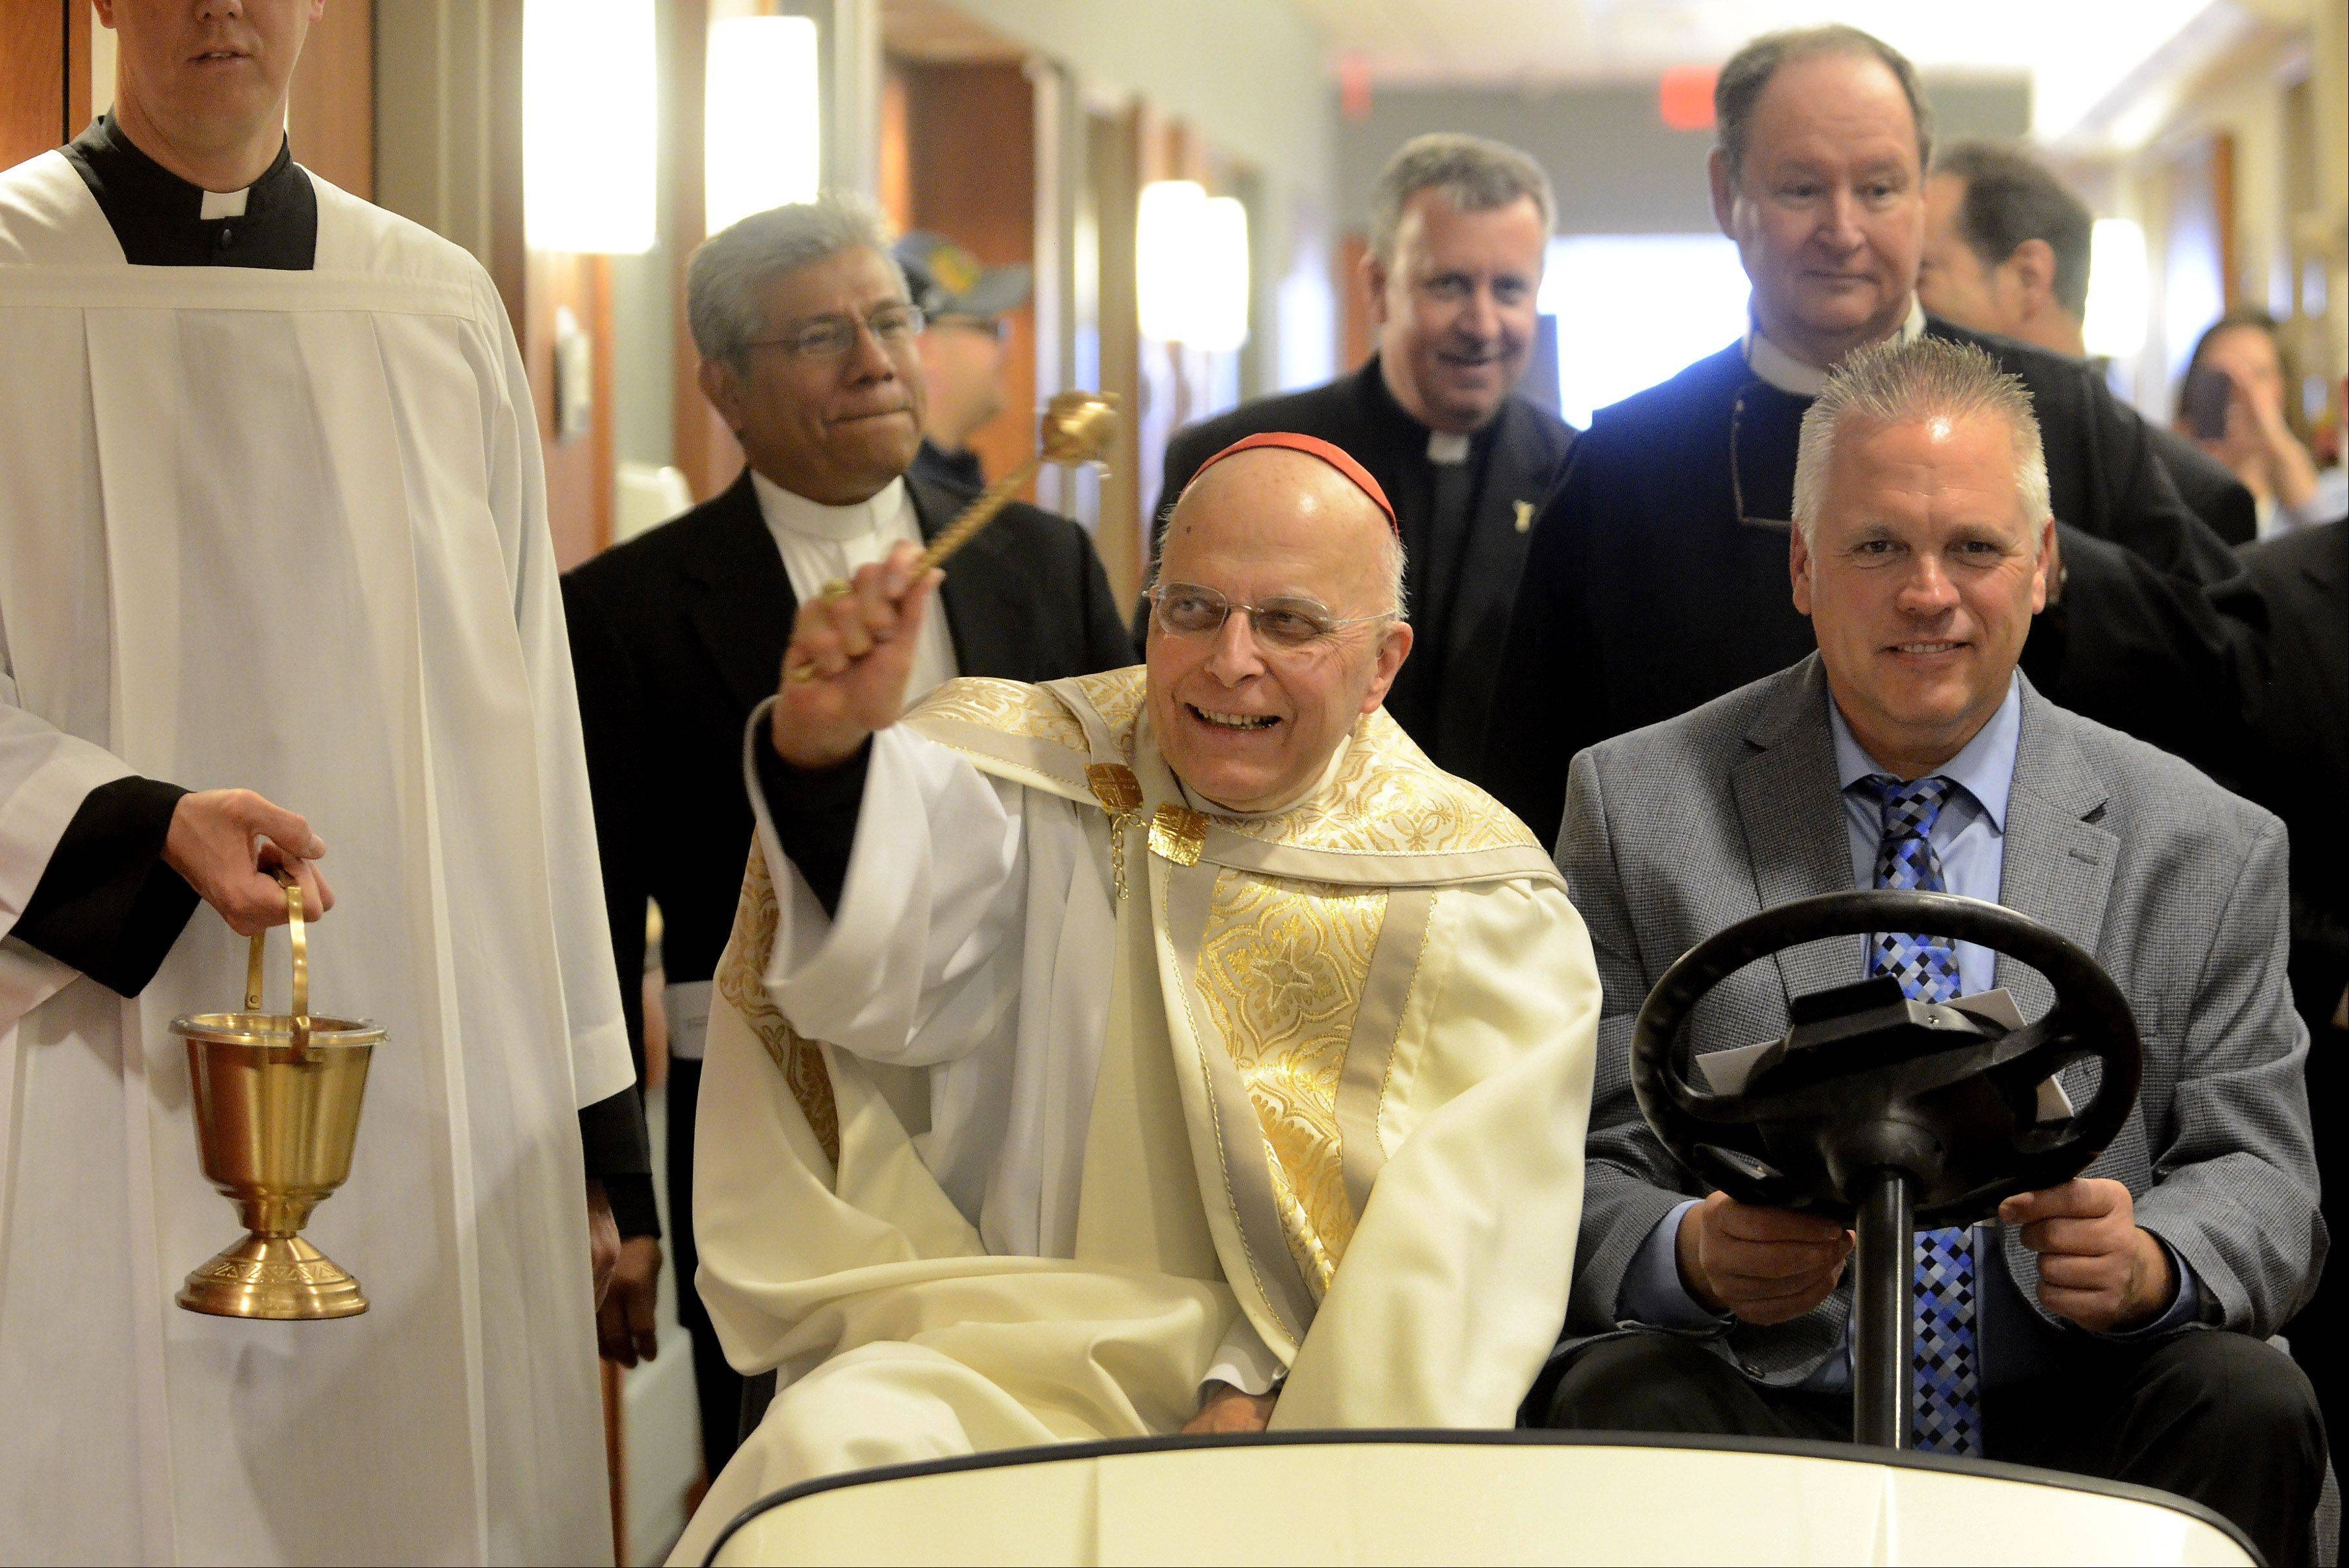 Cardinal Francis George rides through the hallways of the new Alexian Brothers Women & Children's Hospital in Hoffman Estates on Monday, blessing the staff, patients and families.